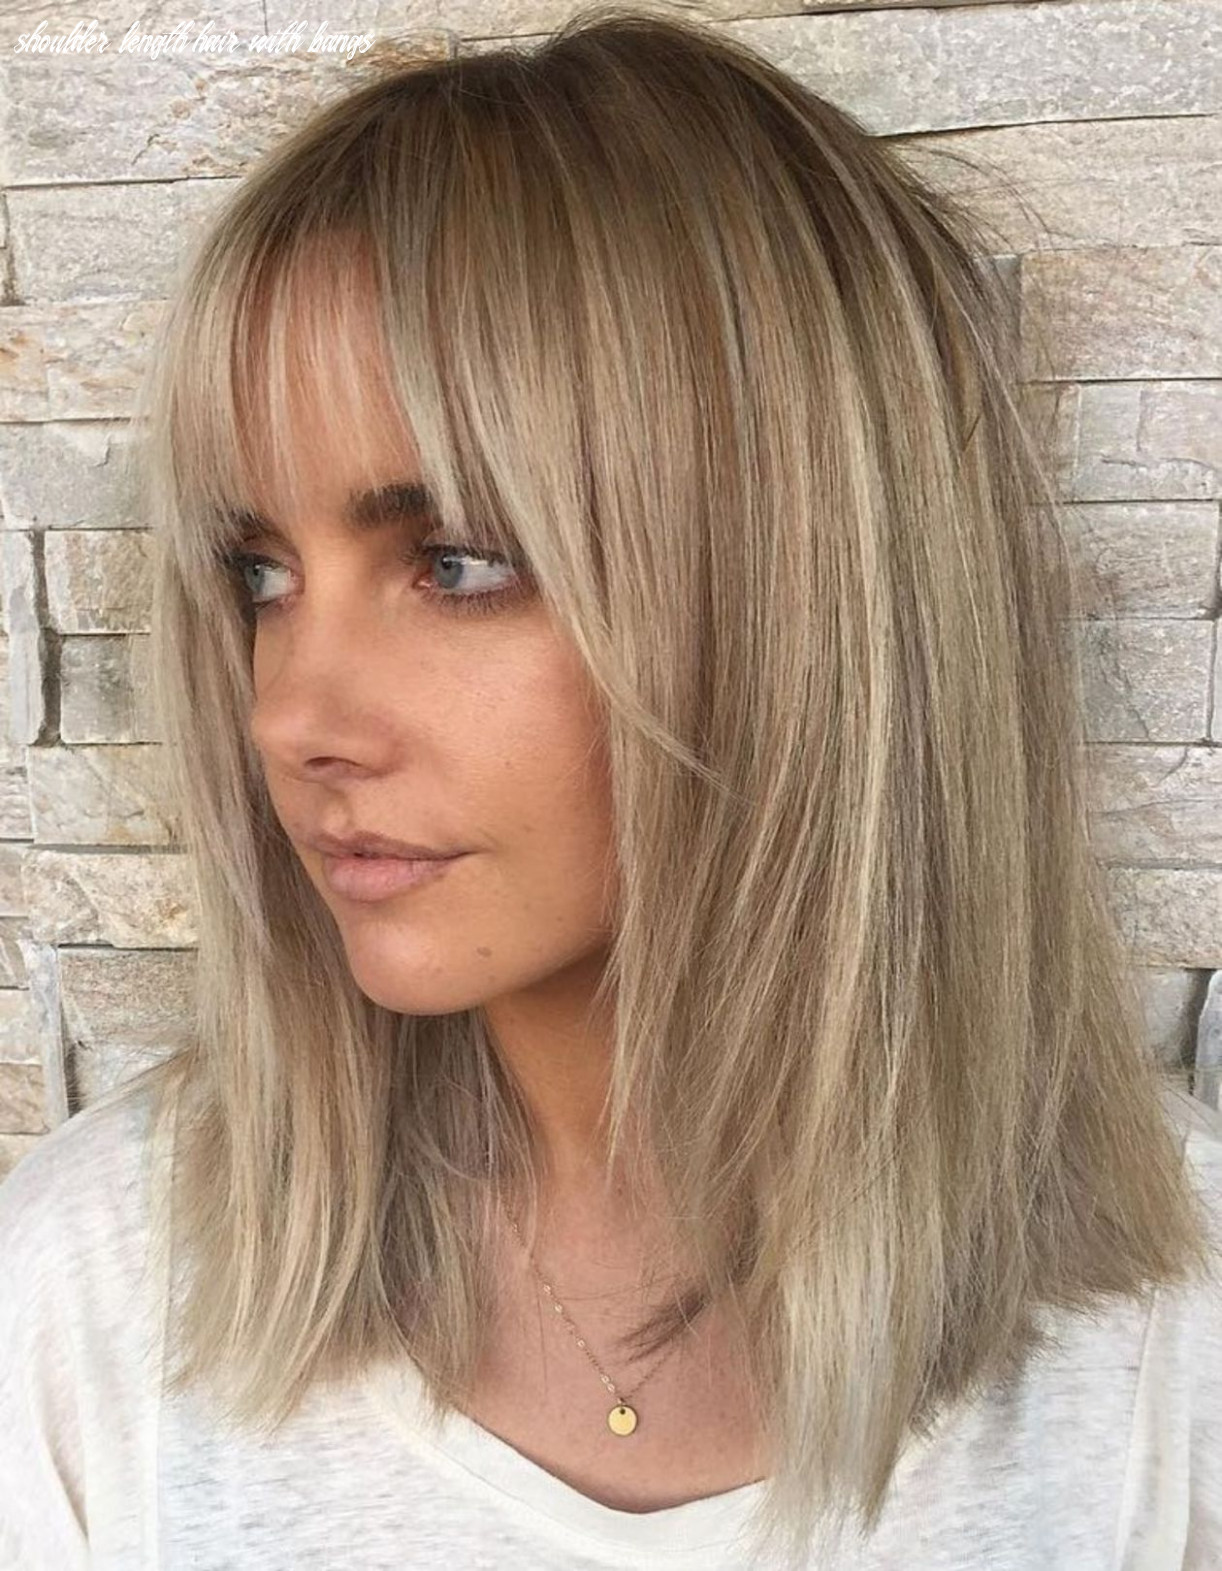 Pin on fringe hairstyles shoulder length hair with bangs